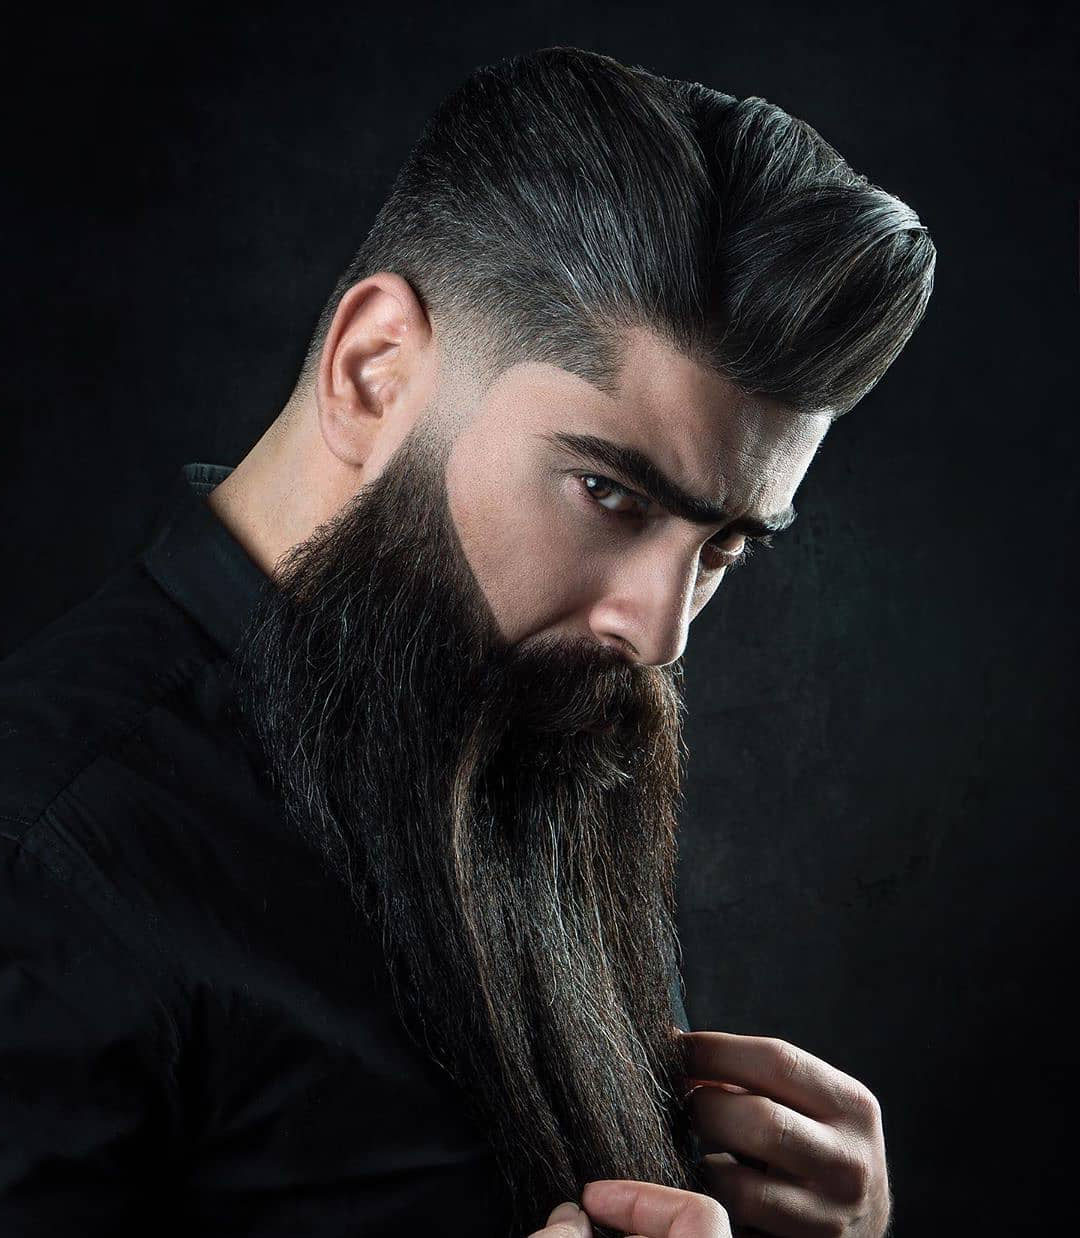 Burst Taper Fade Haircut with Long Beard for Handsome Men